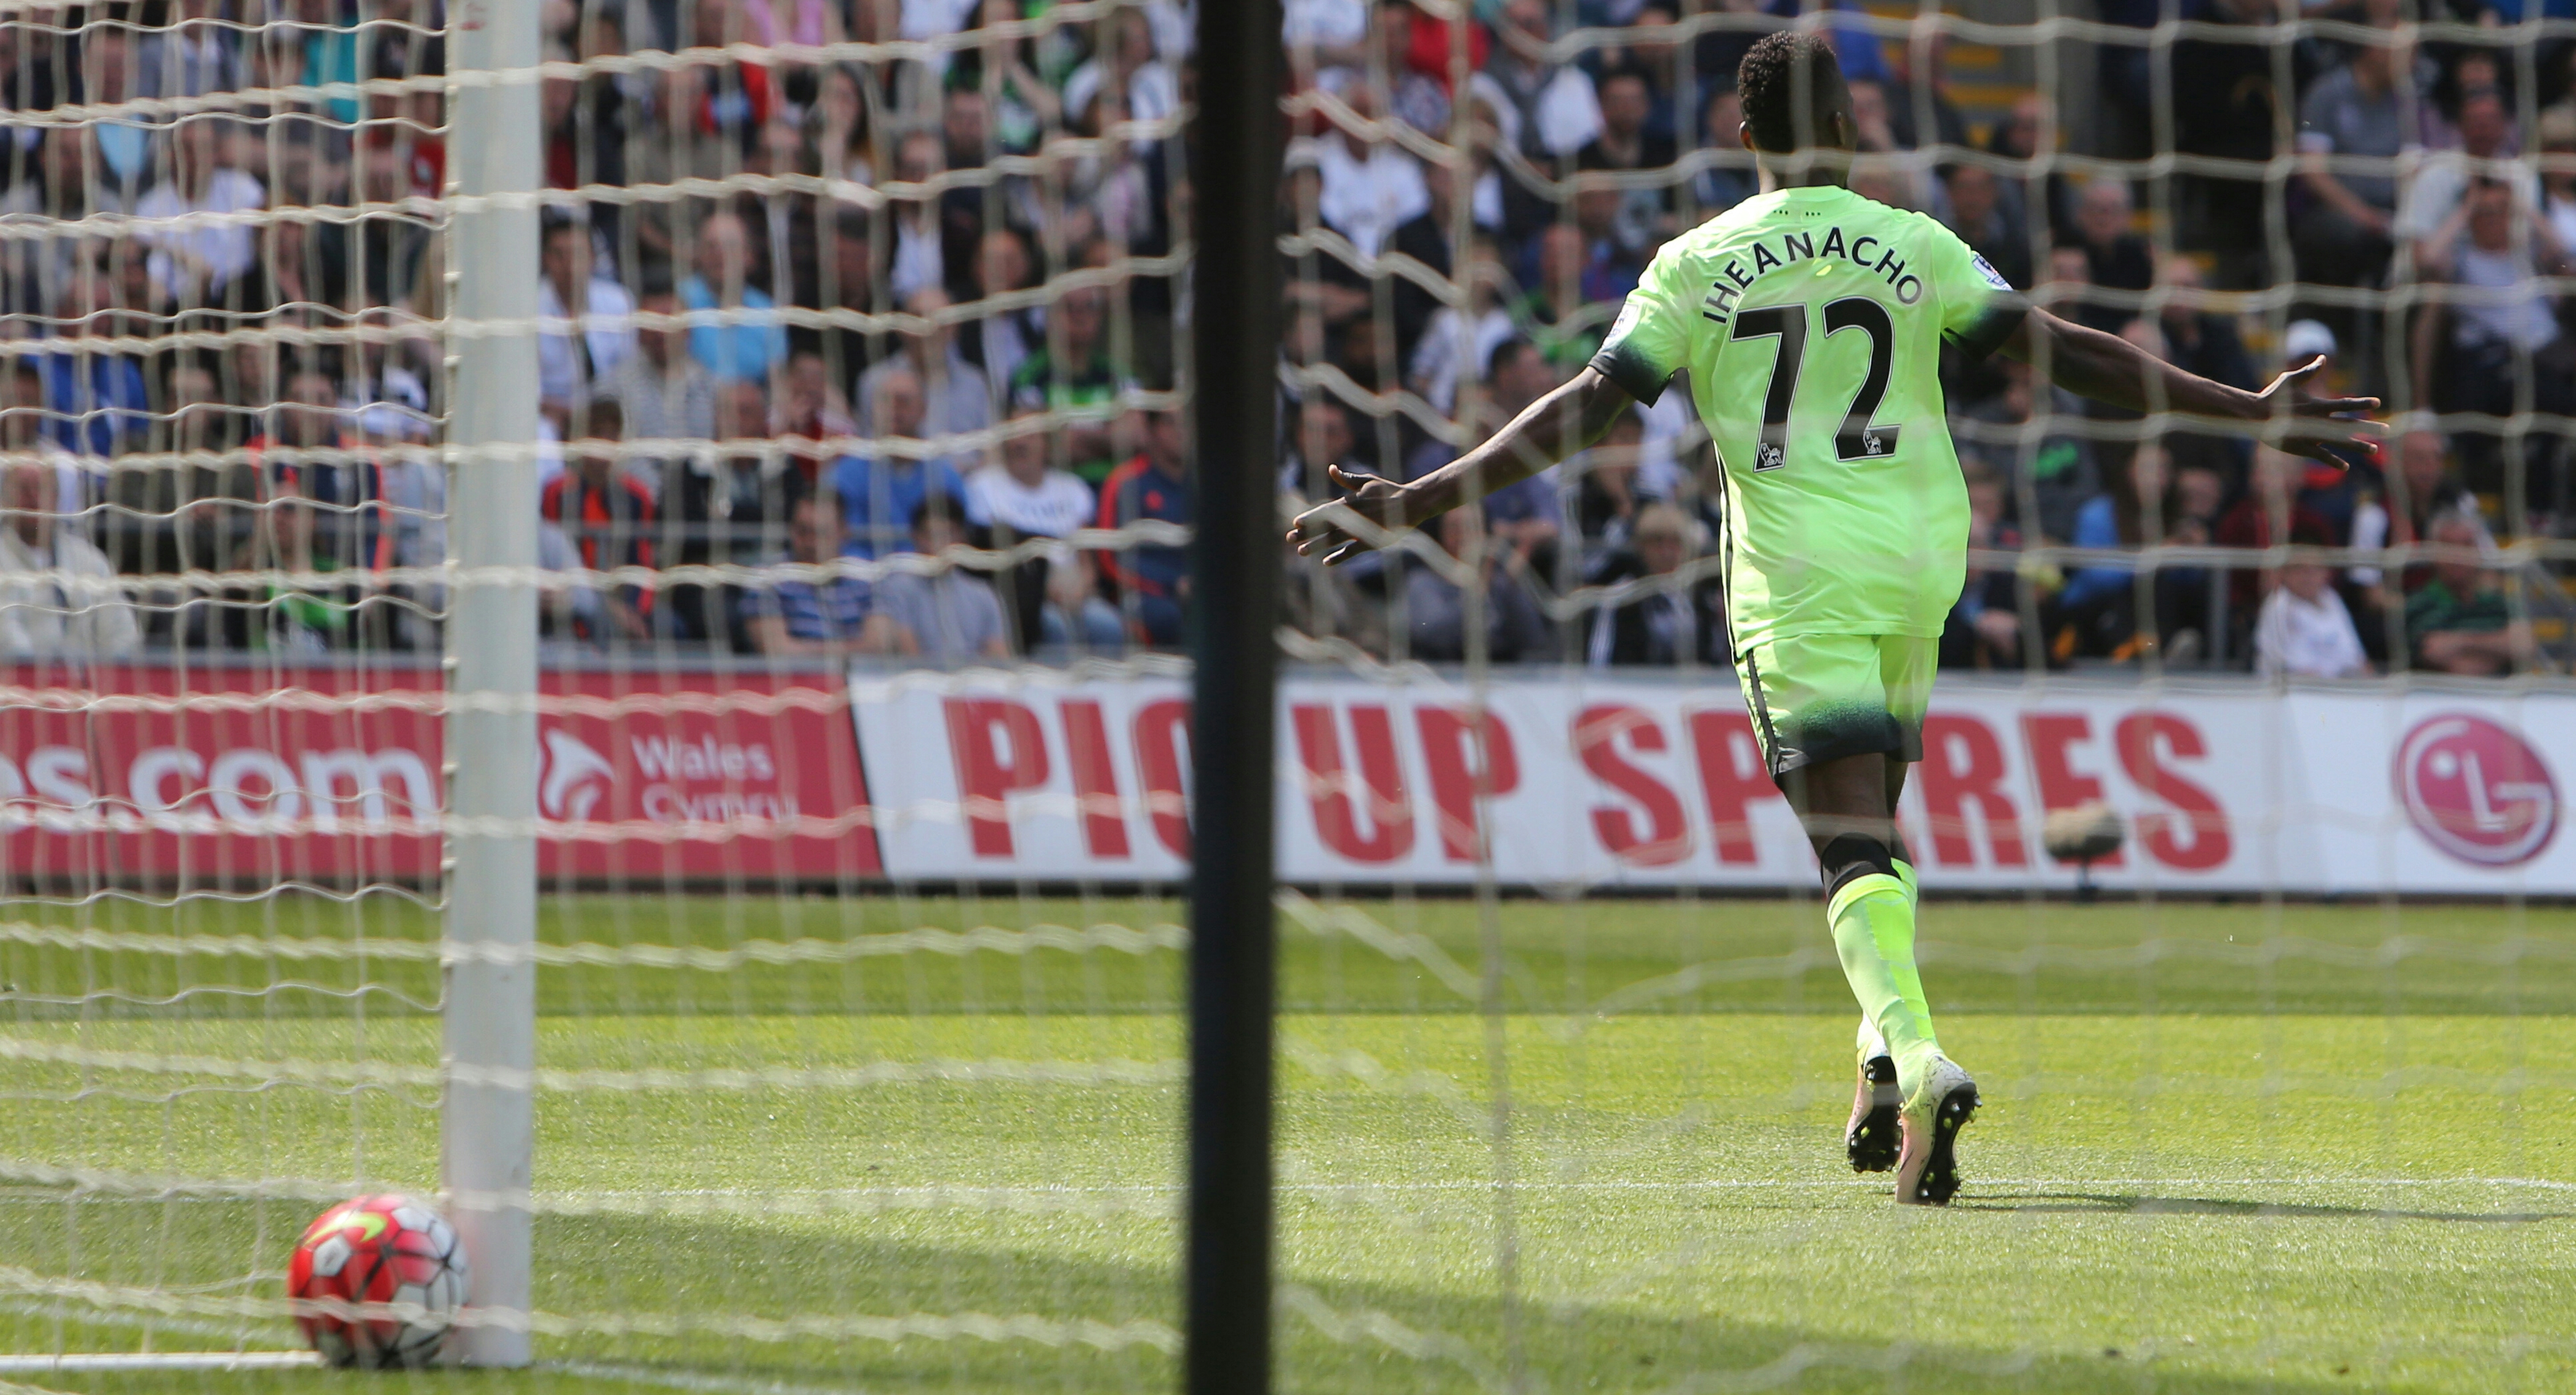 Manchester City's Nigerian striker Kelechi Iheanacho celebrates after scoring the opening goal of the English Premier League football match between Swansea City and Manchester City at The Liberty Stadium in Swansea, south Wales on May 15, 2016. The game finished 1-1.GEOFF CADDICK / AFP